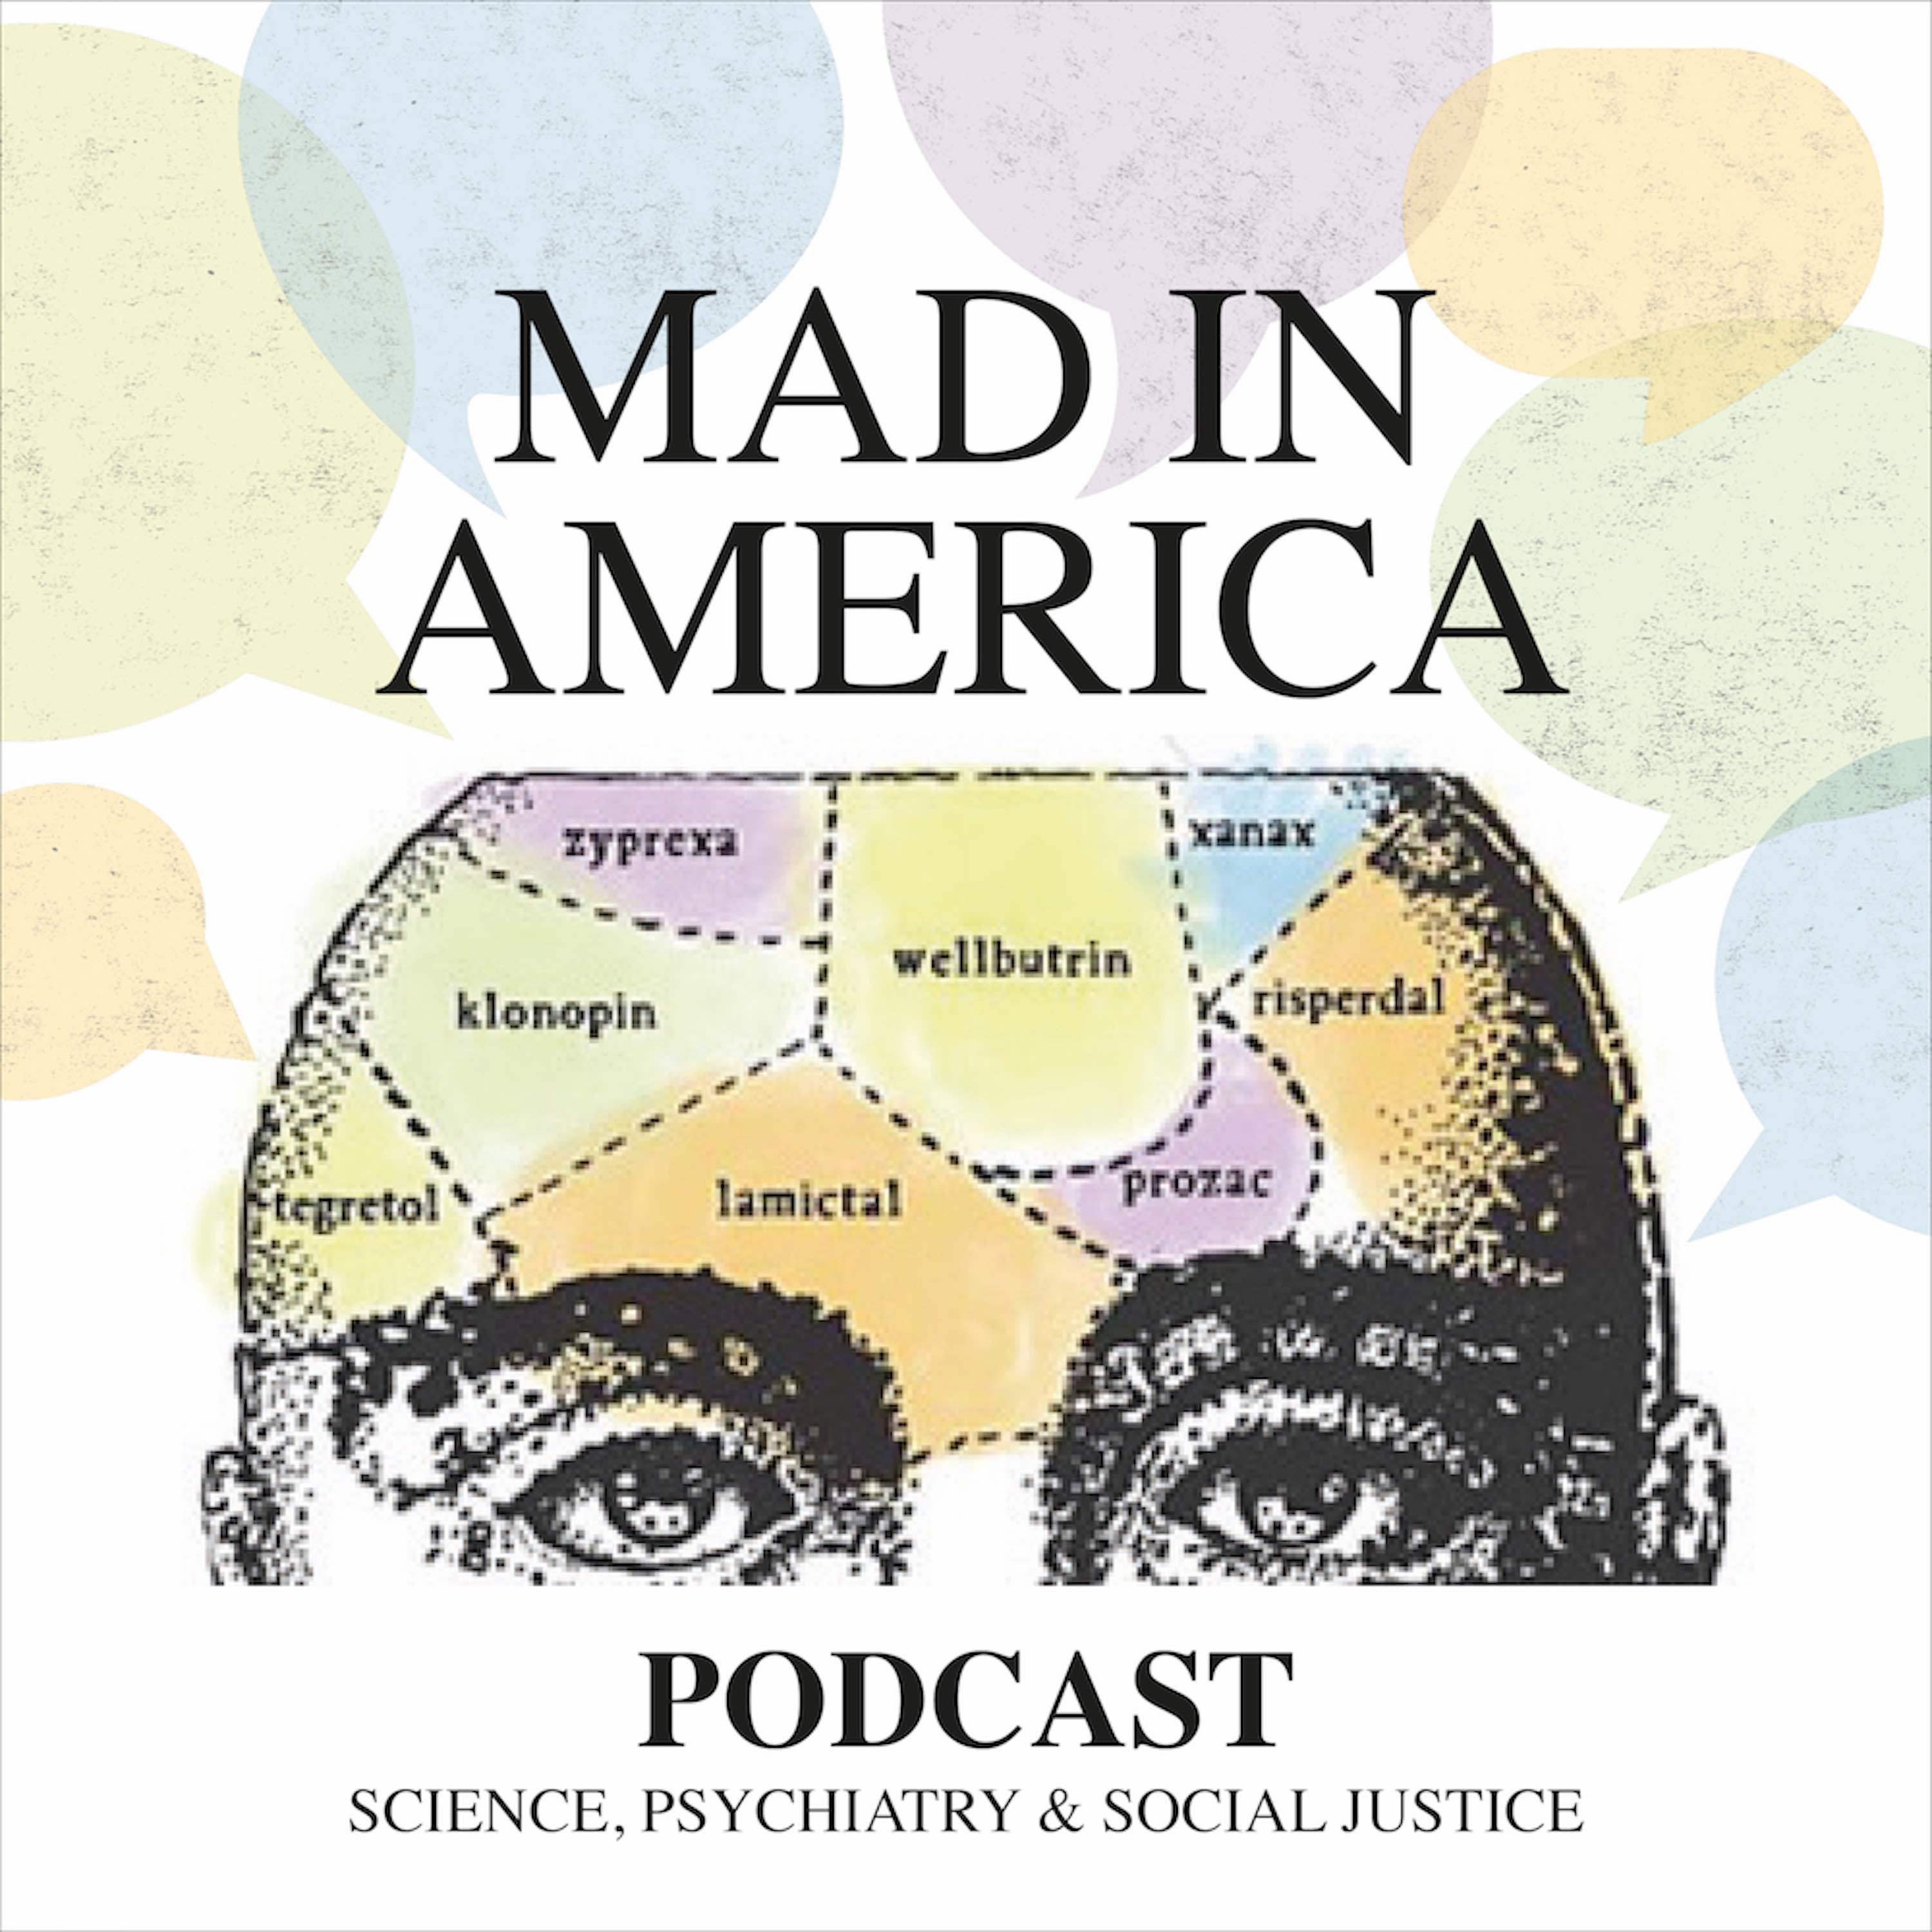 Mad in America: Rethinking Mental Health - China Mills - Global Mental Health - Coloniality, Technology and Medicalization